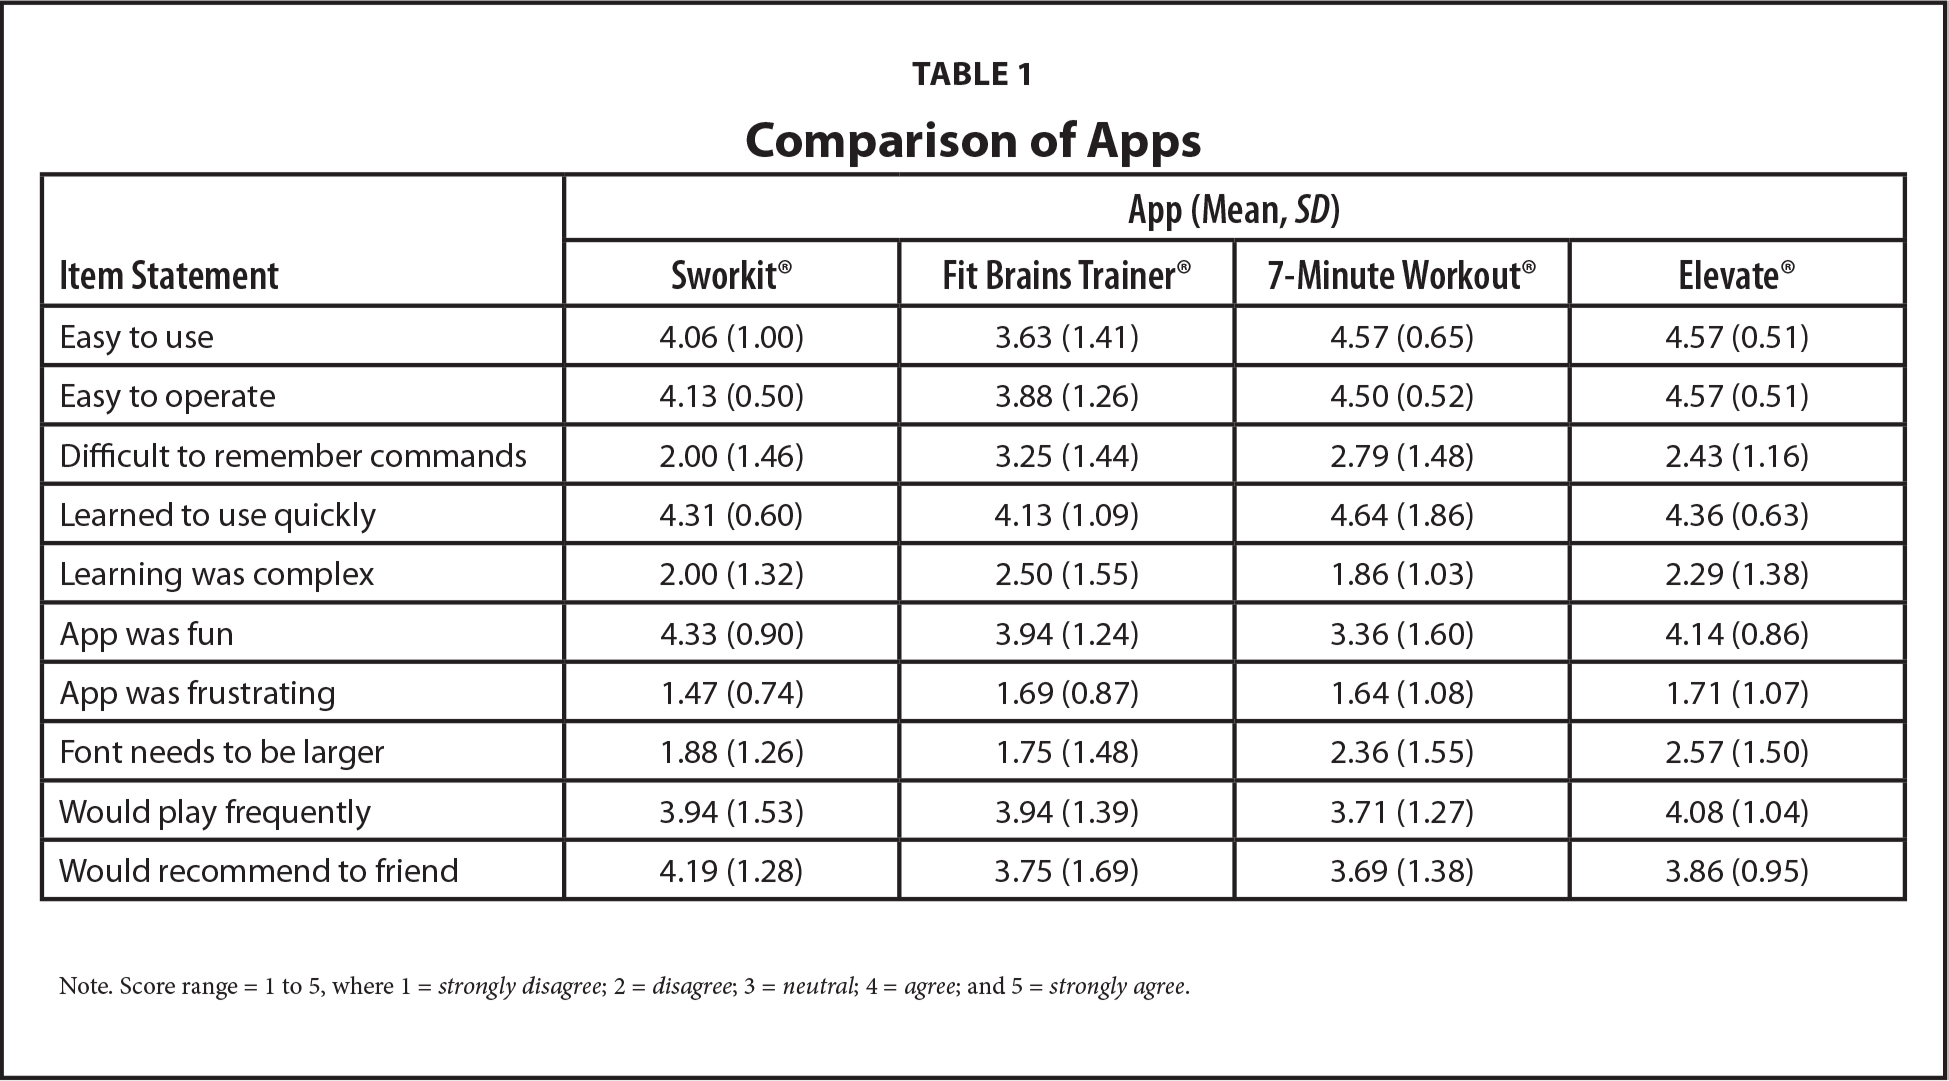 Comparison of Apps